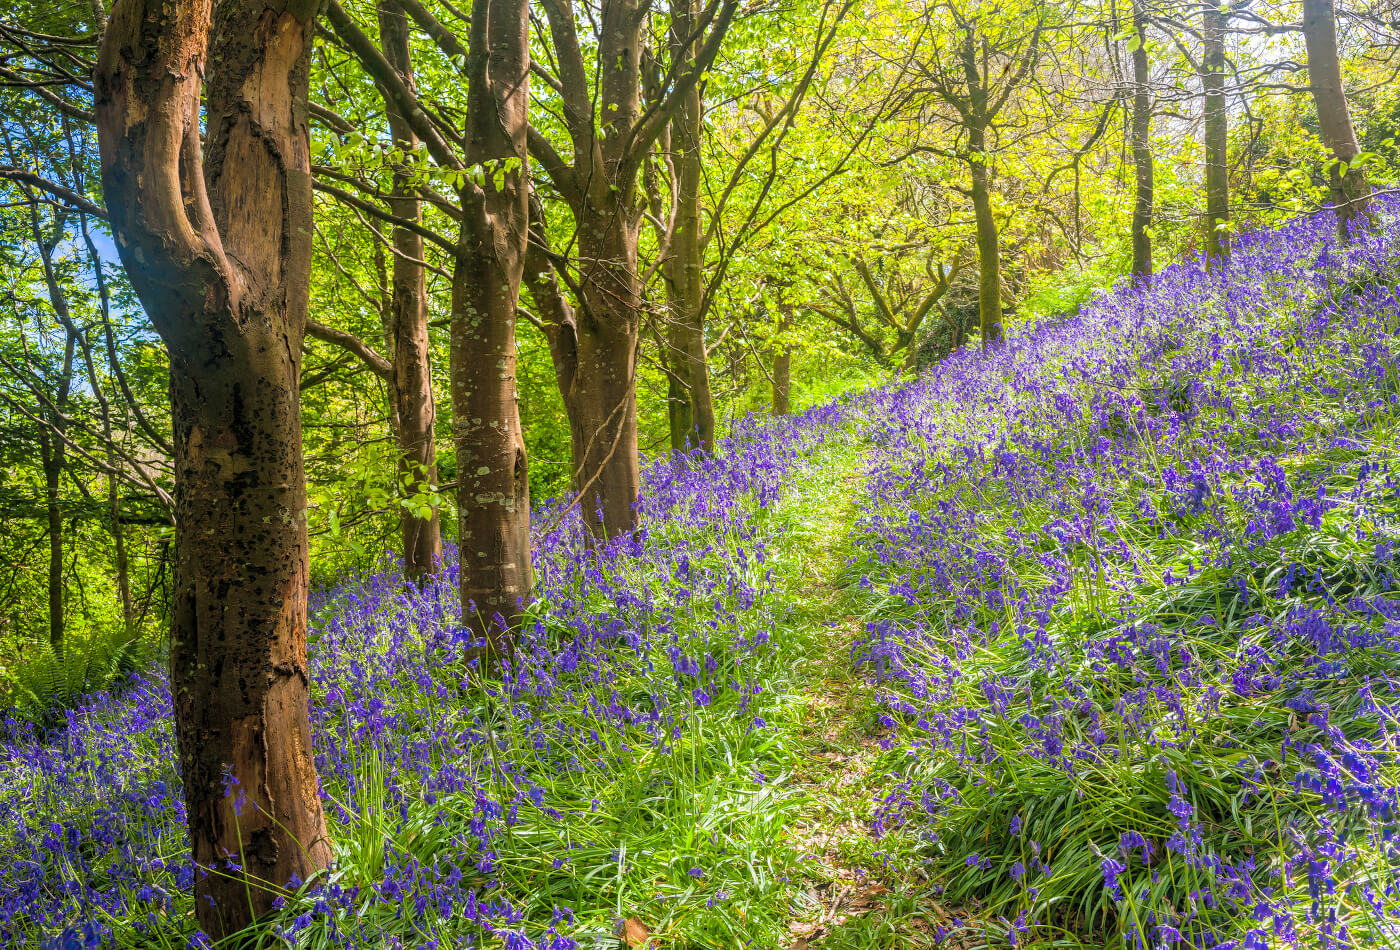 Bluebells in Cornish woodland